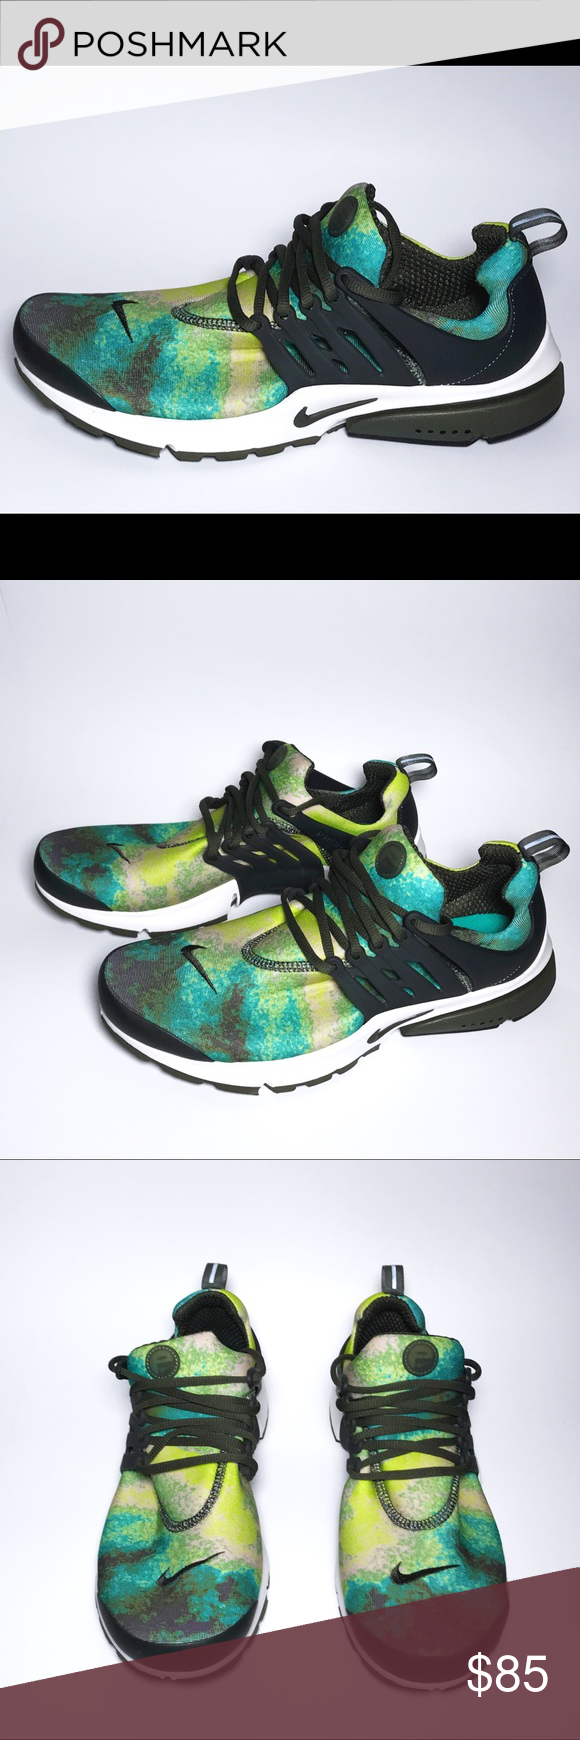 0ec4eb3c794403 Nike Air Presto GPX Phantom Khaki Jade Size 10 Nike Air Presto GPX brand  new in original box. These are one of the most comfortable running shoes on  the ...